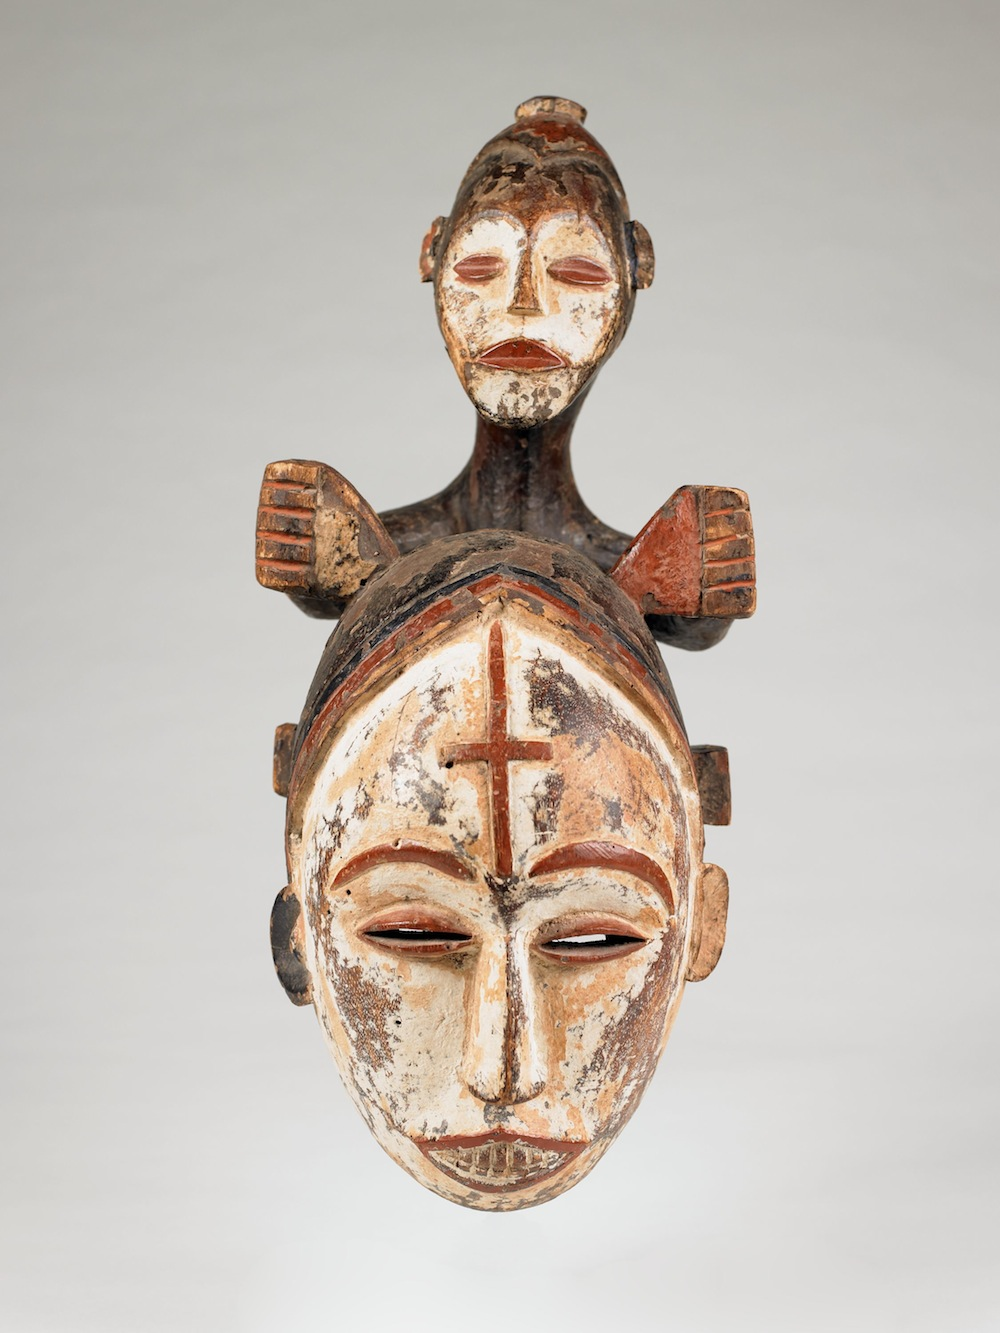 Queen of Women Mask (Eze Nwanyi), Northeastern Igbo people (Ezza or Izzi sub-group), Nigeria. Late nineteenth/early twentieth century. Wood, pigment. Museum purchase with funds given in memory of Mrs. Dorothy Steiner. 2009.3 .